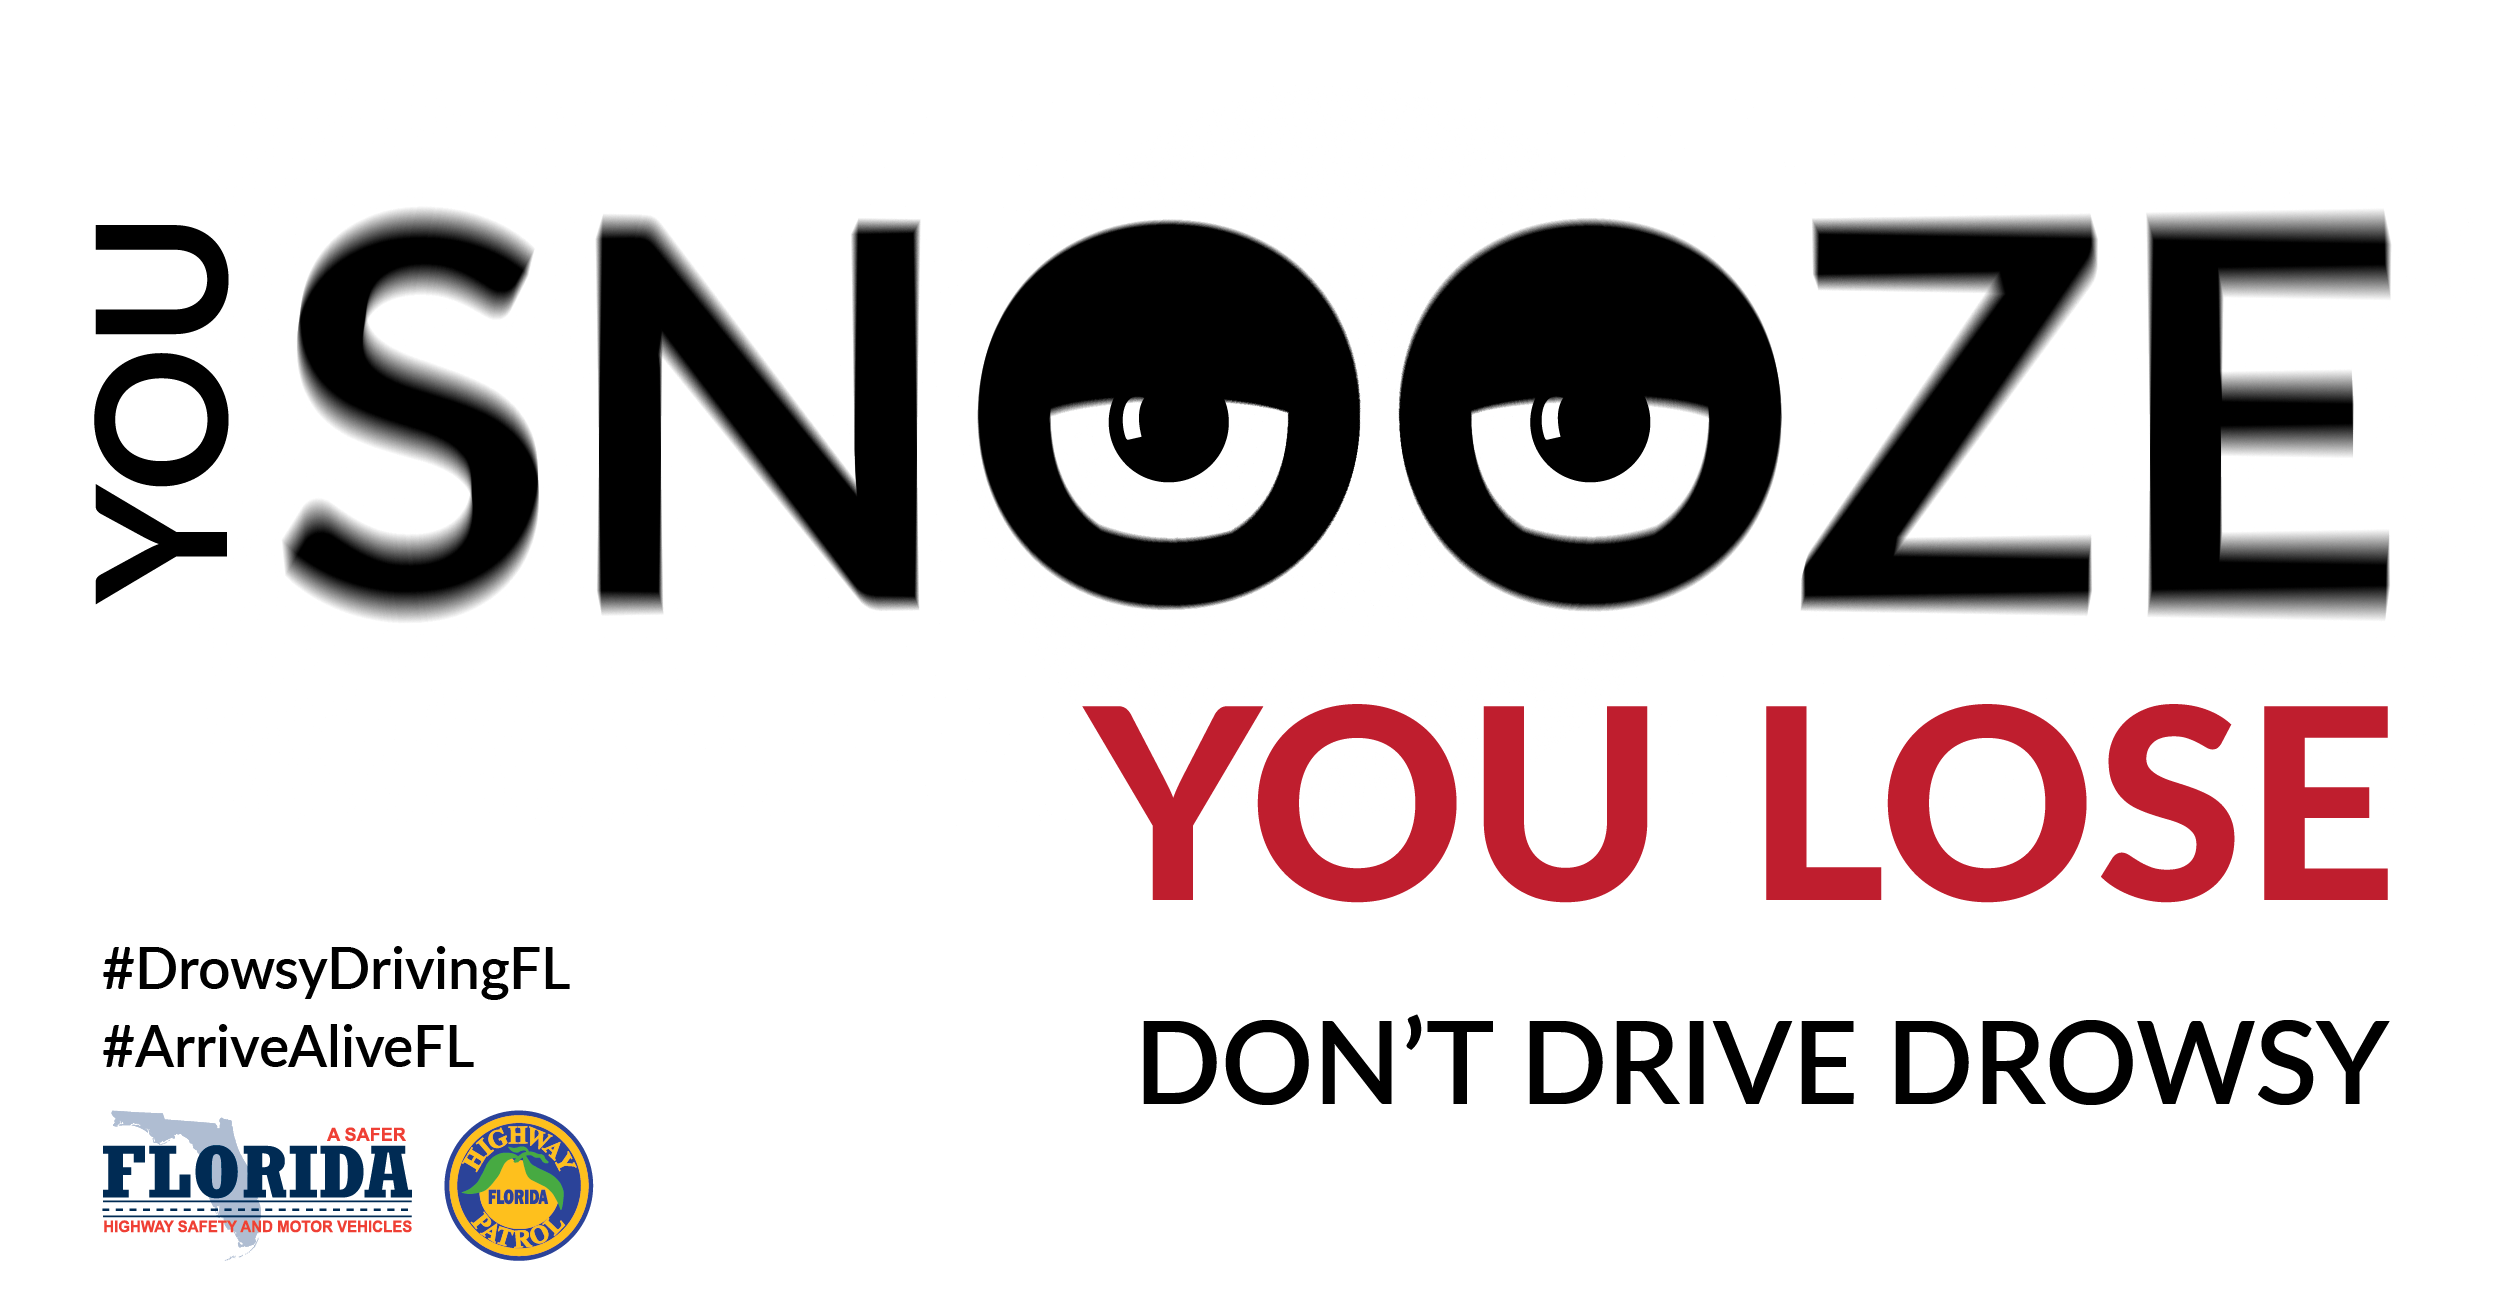 Drowsy Driving Florida Highway Safety And Motor Vehicles